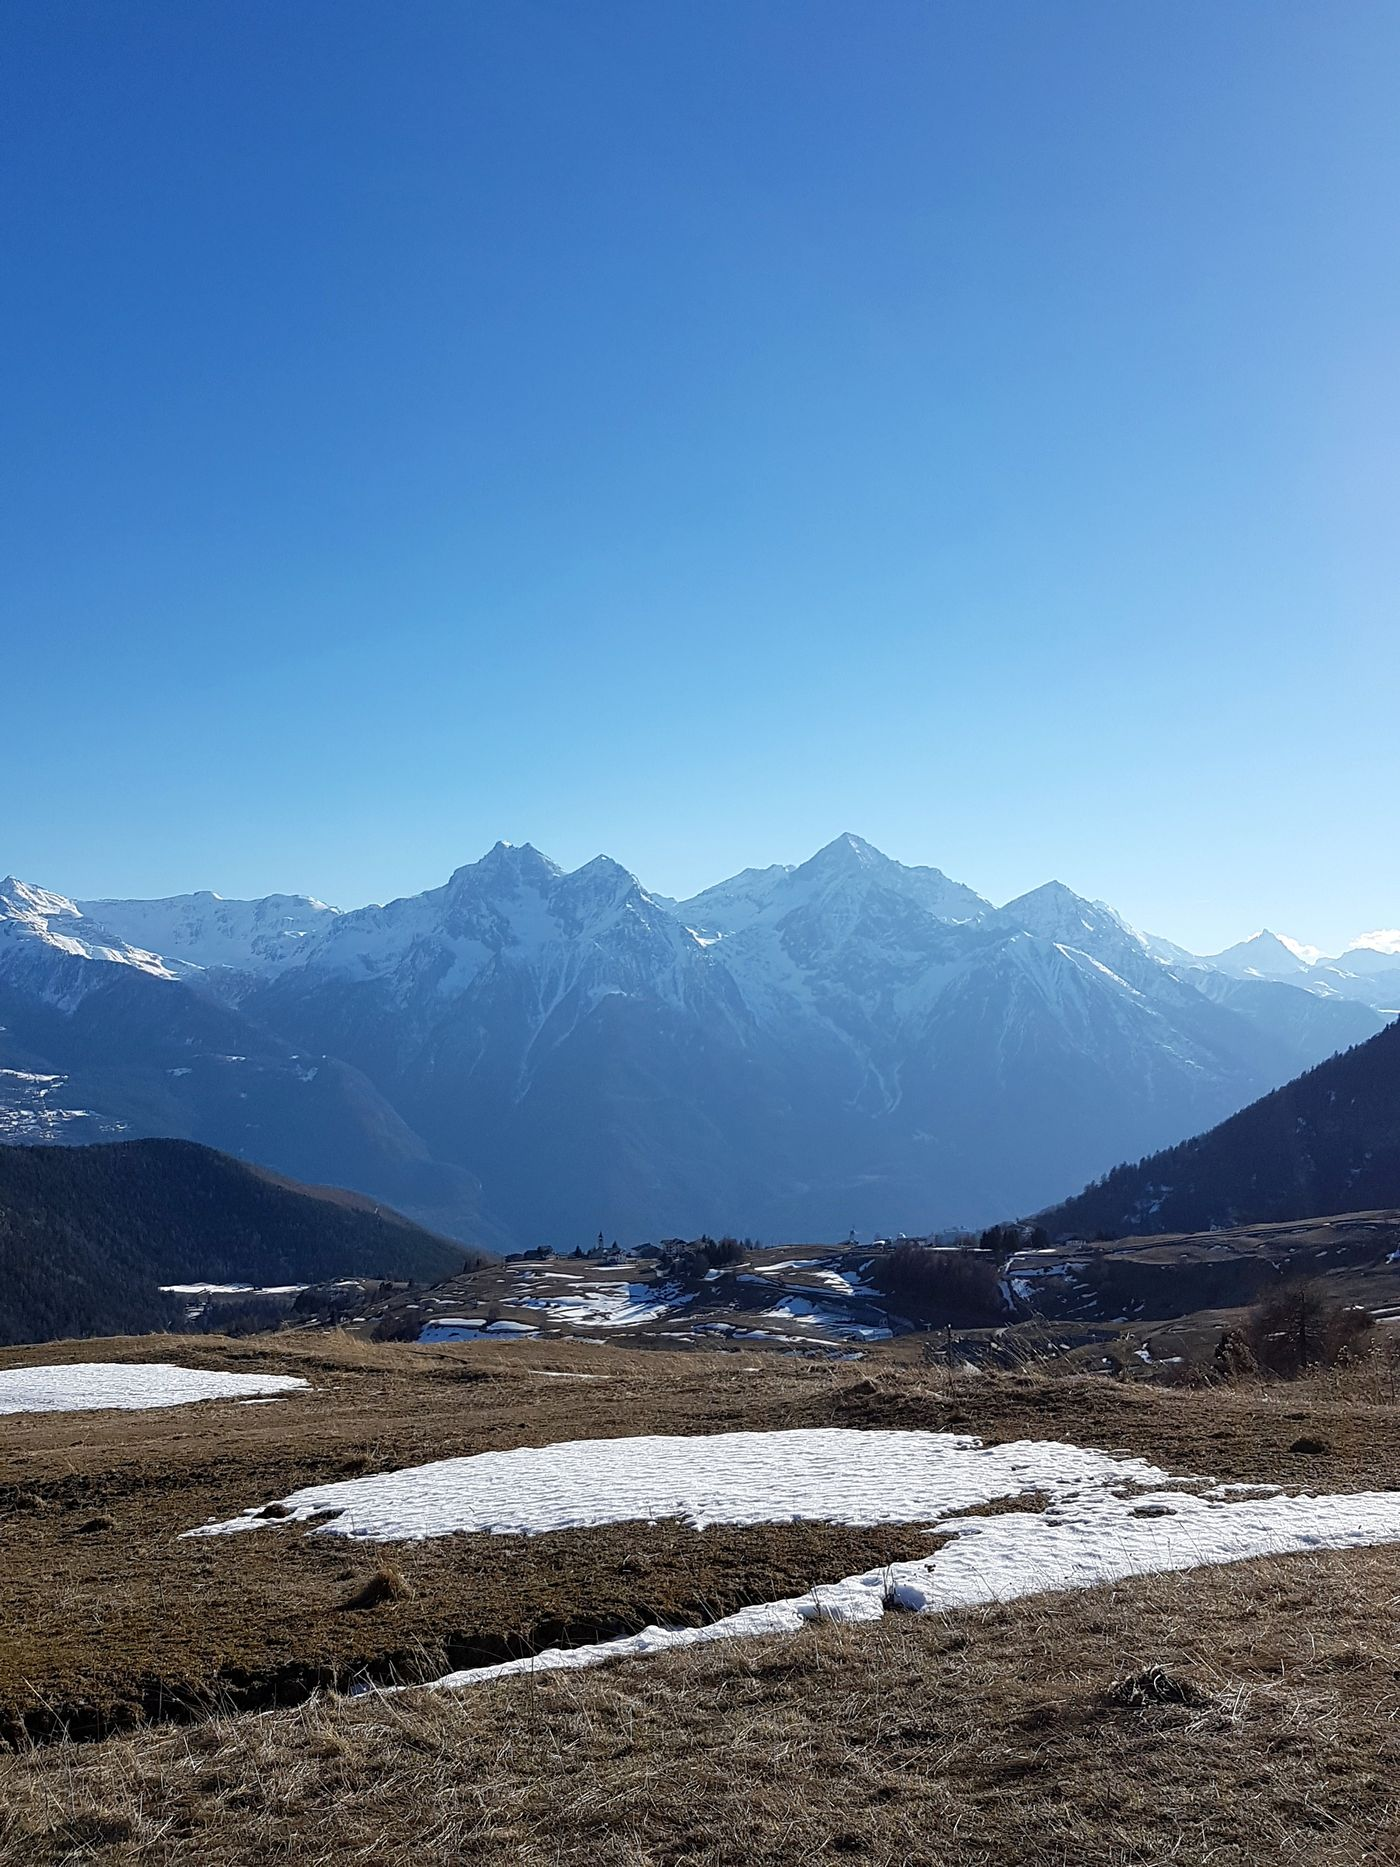 Imposing beauty. Blue Mountain Snow Landscape Outdoors No People Nature Alps Nature Photography Offroad Into The Wild Clear Sky Altitude High Mountain Road